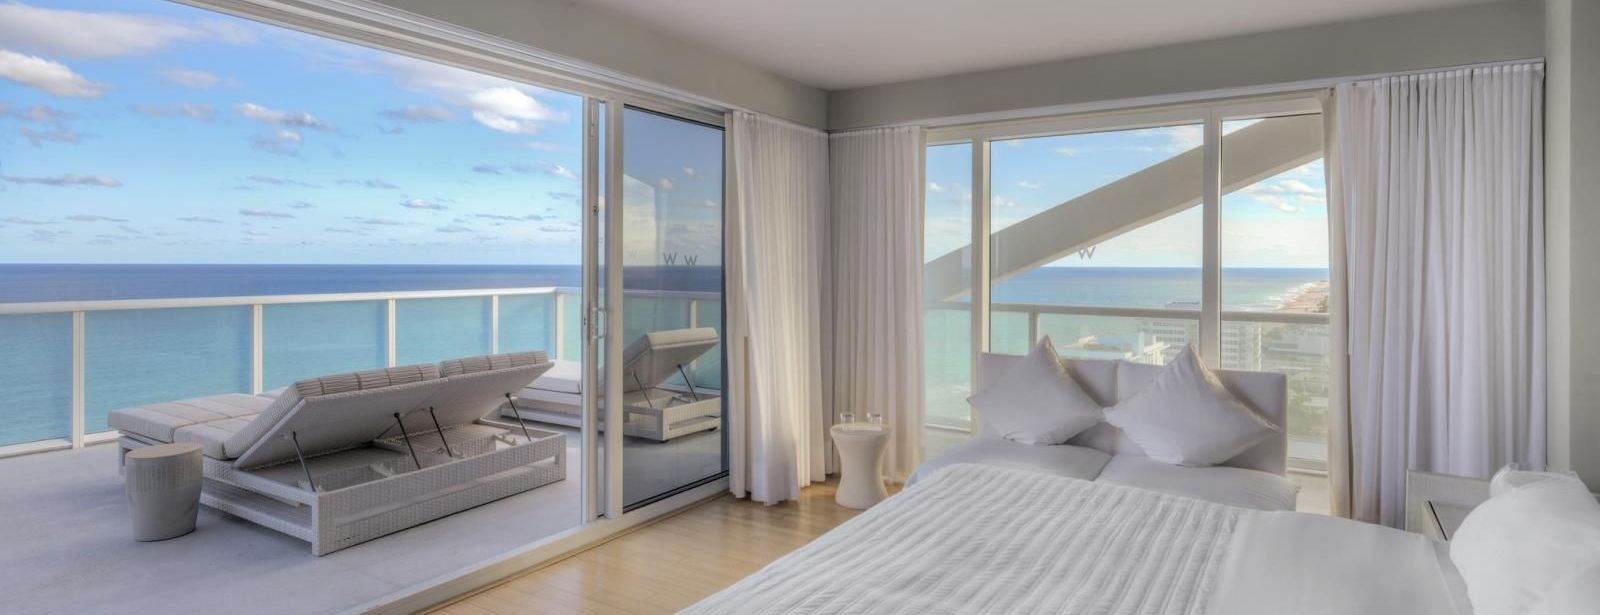 Oceanfront Suite | W Fort Lauderdale Hotel